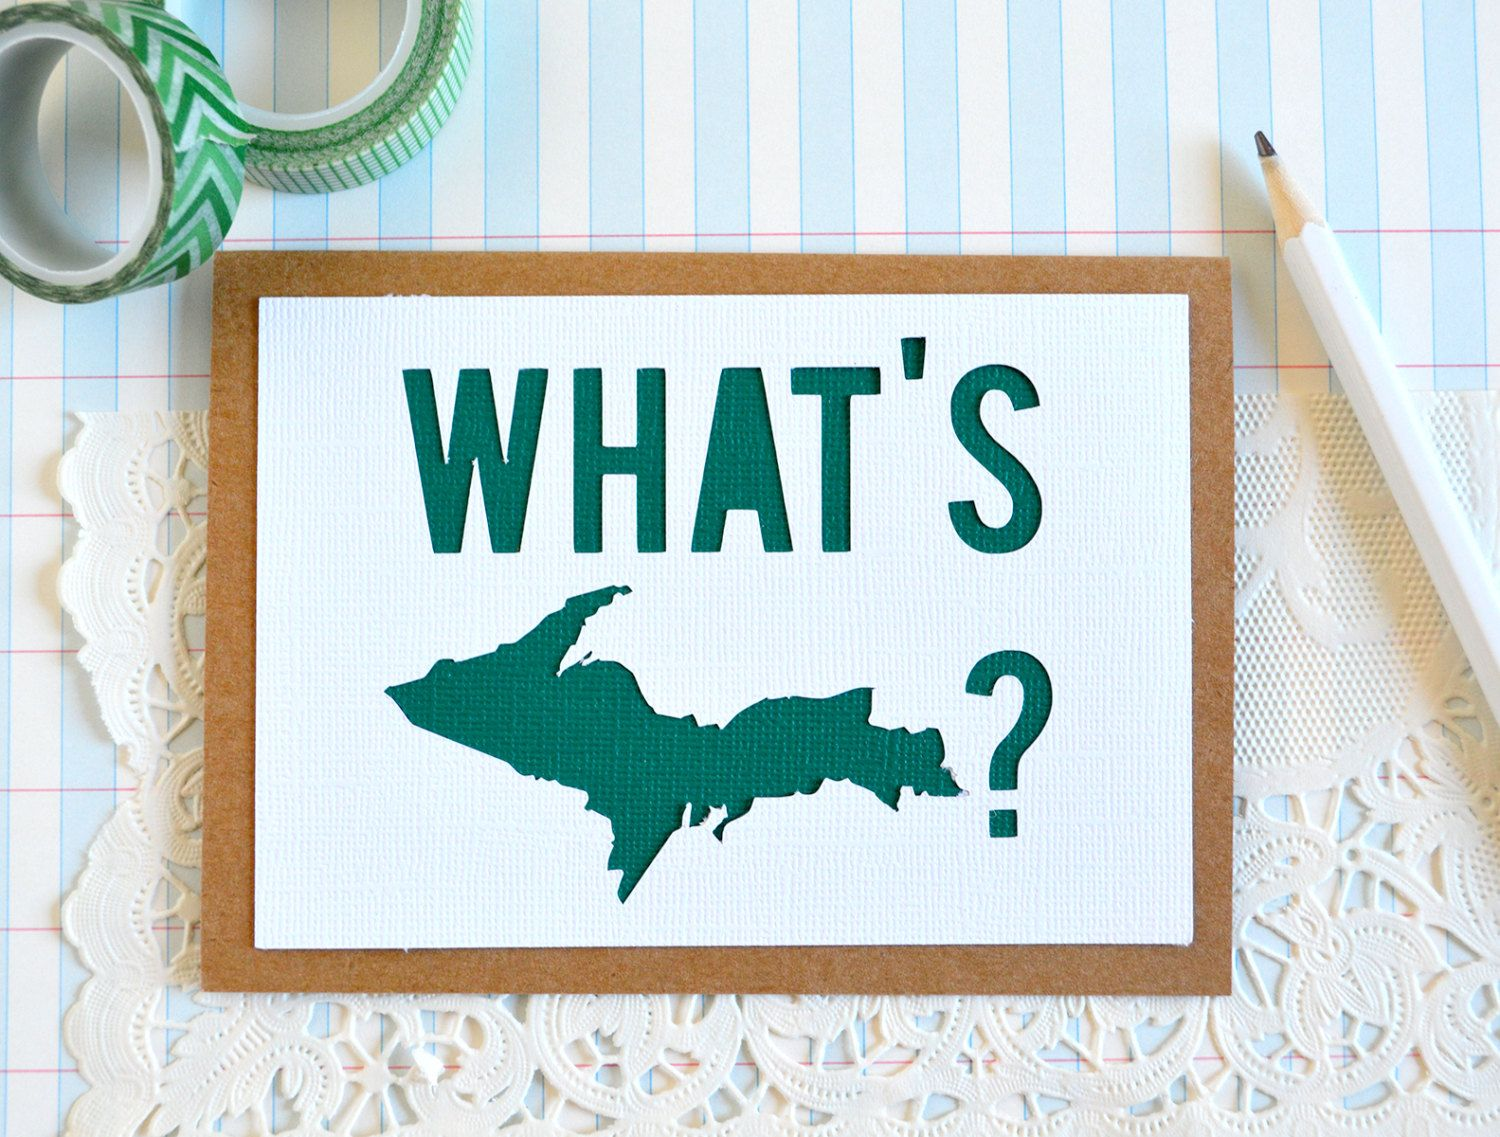 Funny just because card michigan greeting card whats up card new to typeshyshop on etsy funny just because card michigan greeting card whats up card thinking of you card hello card note card blank card m4hsunfo